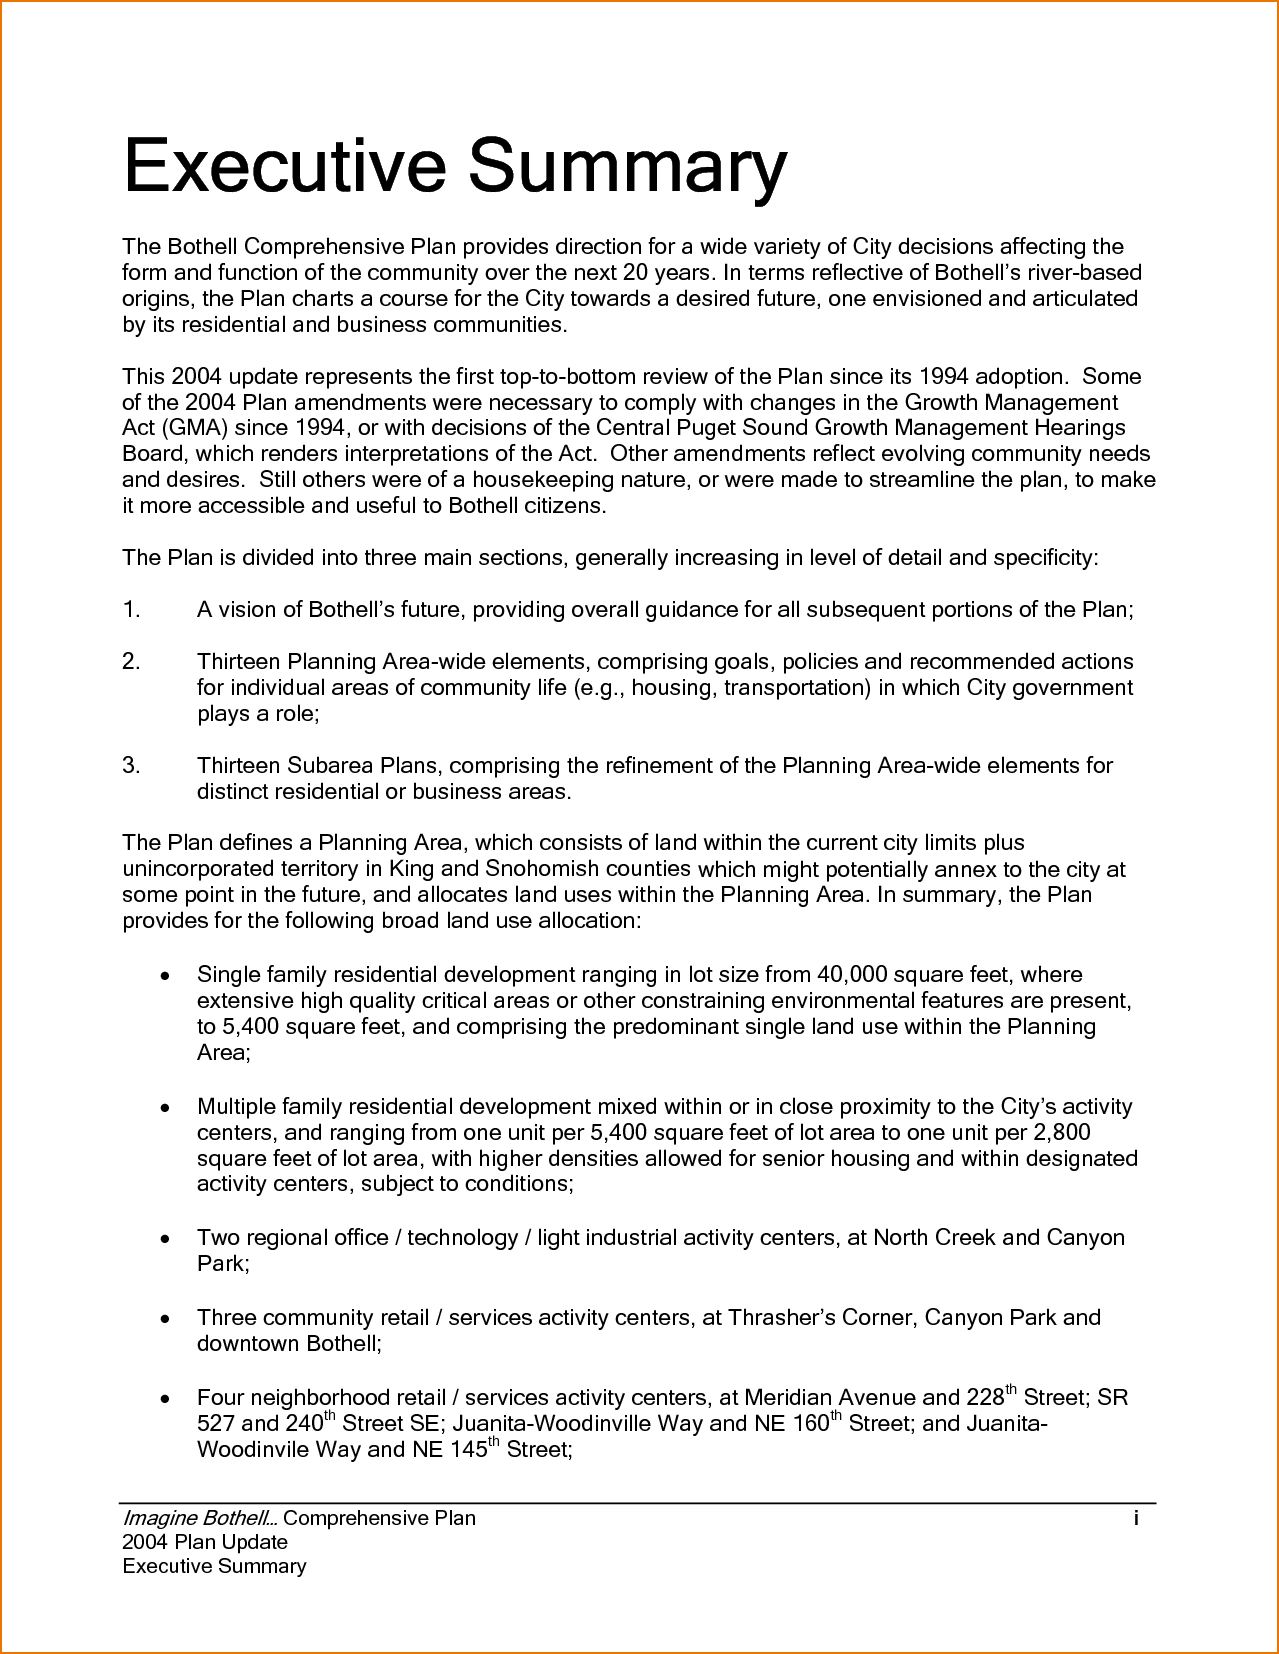 Executive Summary Example Incident Report Template Sample Inside Template For Summary Report